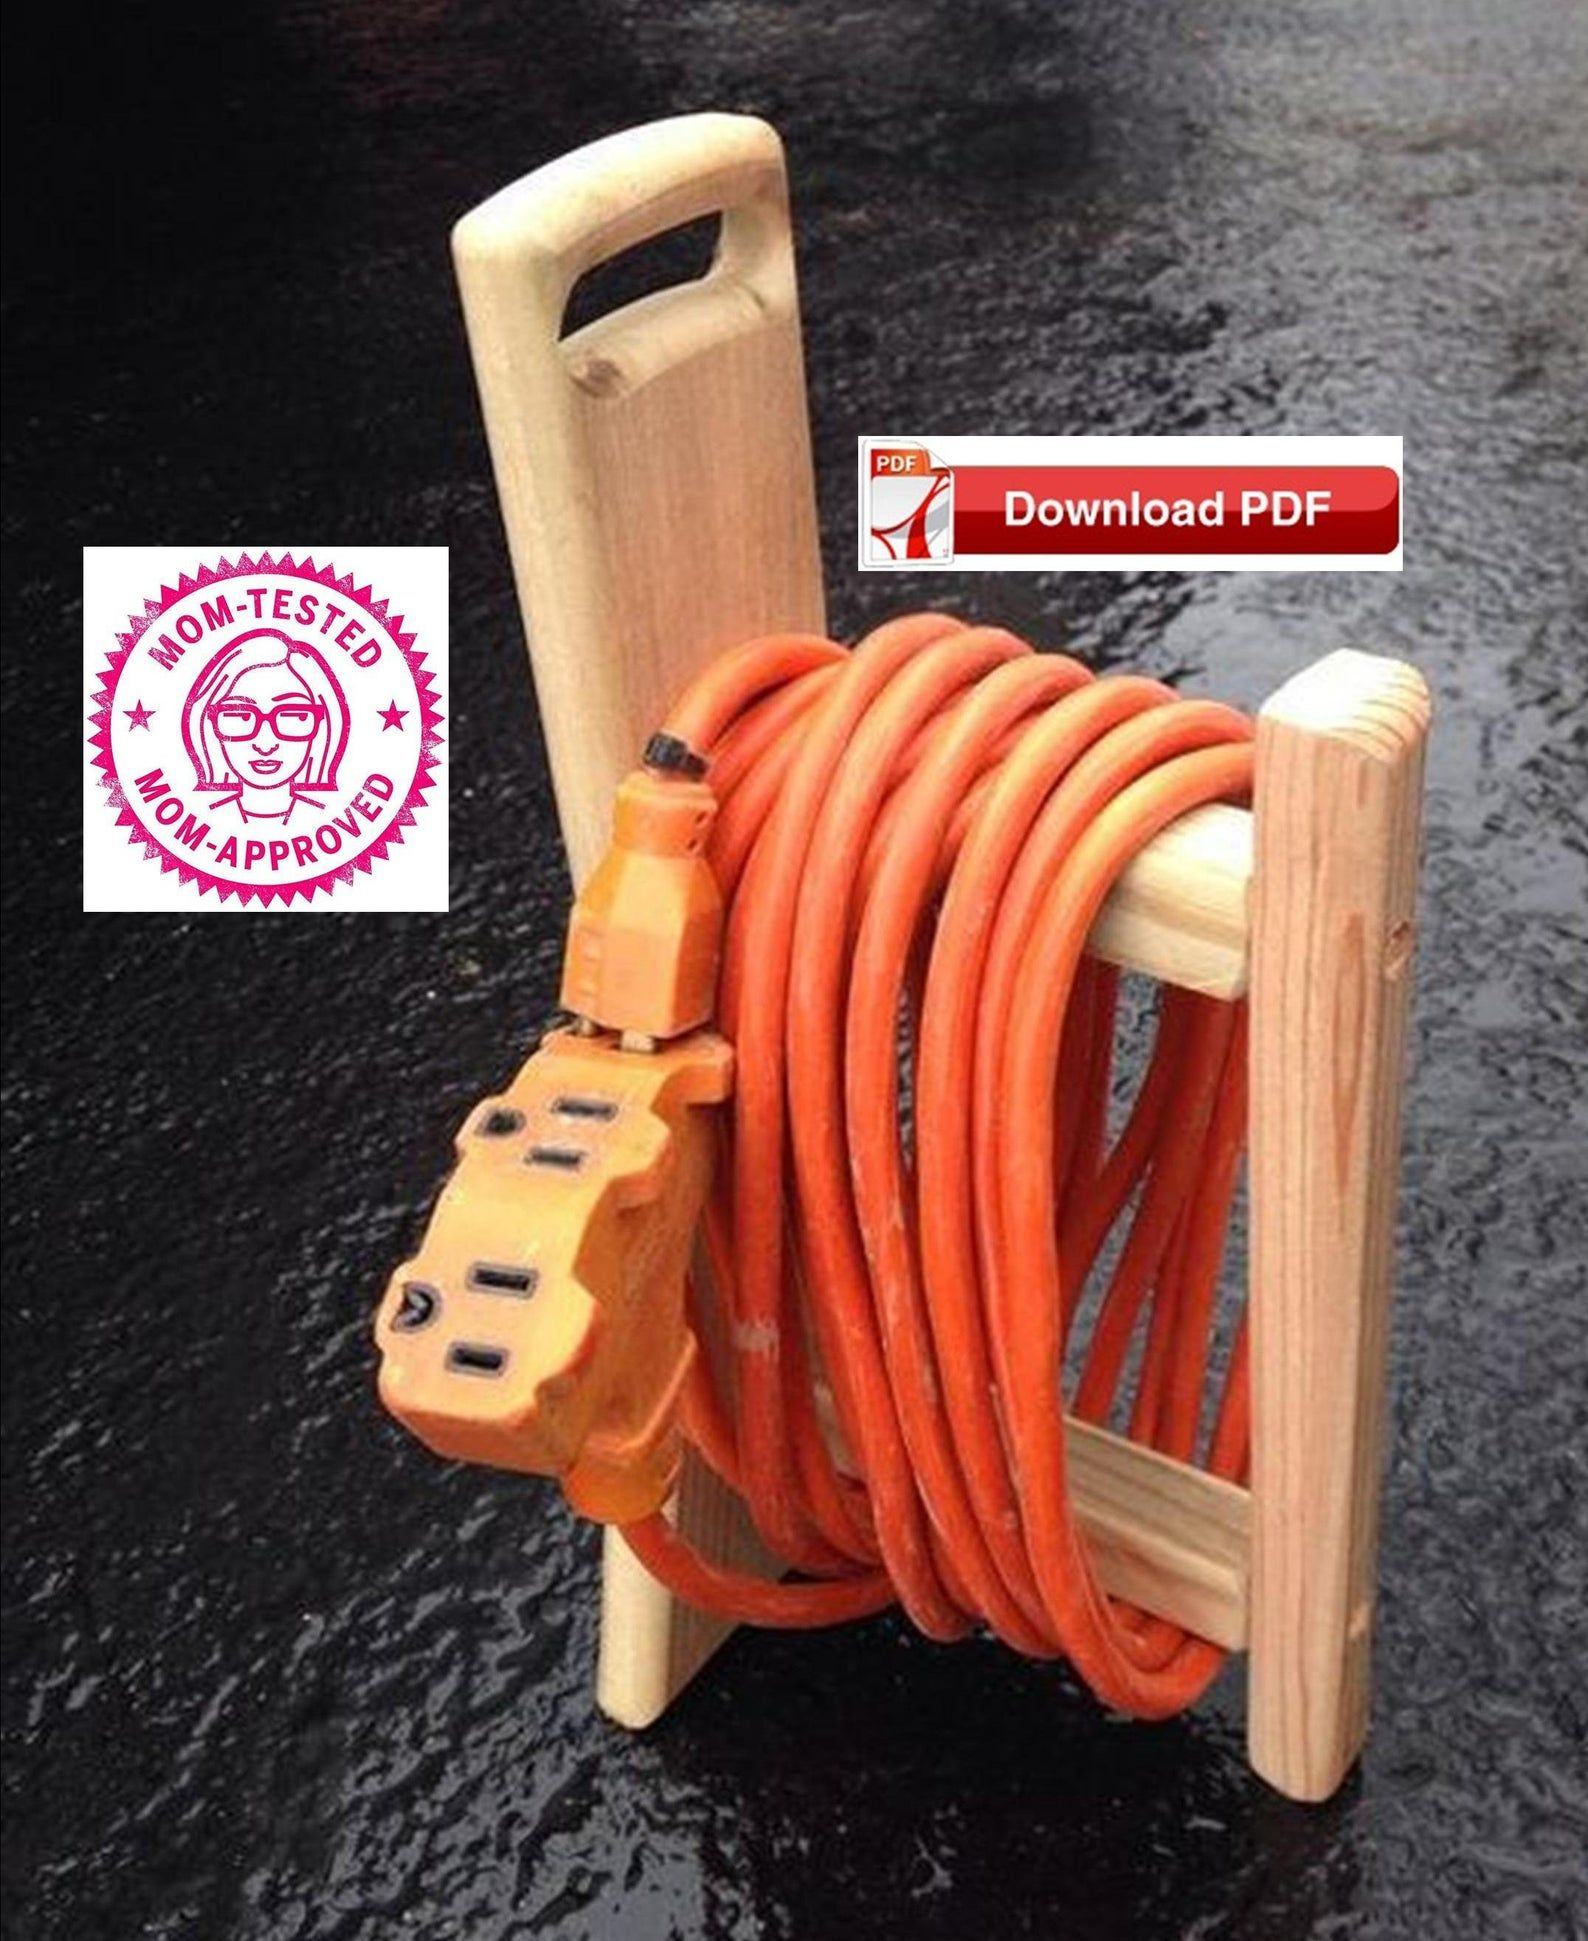 Extension cord caddy planextension cord holder plan